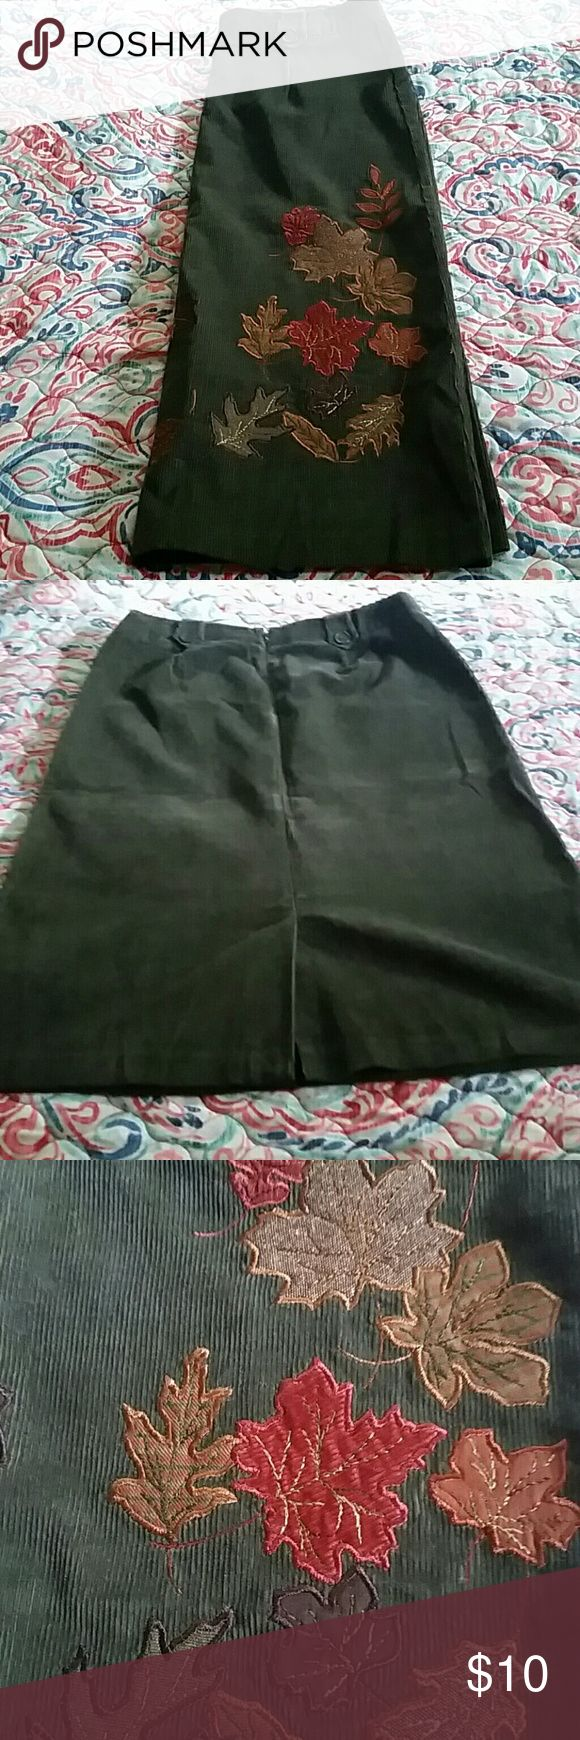 "Adorable corduroy skirt The skirt is adorable and perfect for your fall wardrobe. So cute with a pair of tall boots and cozy sweater. Like new condition. 100% cotton. Skirt with a dark olive green embroidery with reds, greens and golds. 27"" long Norton Studio Skirts"